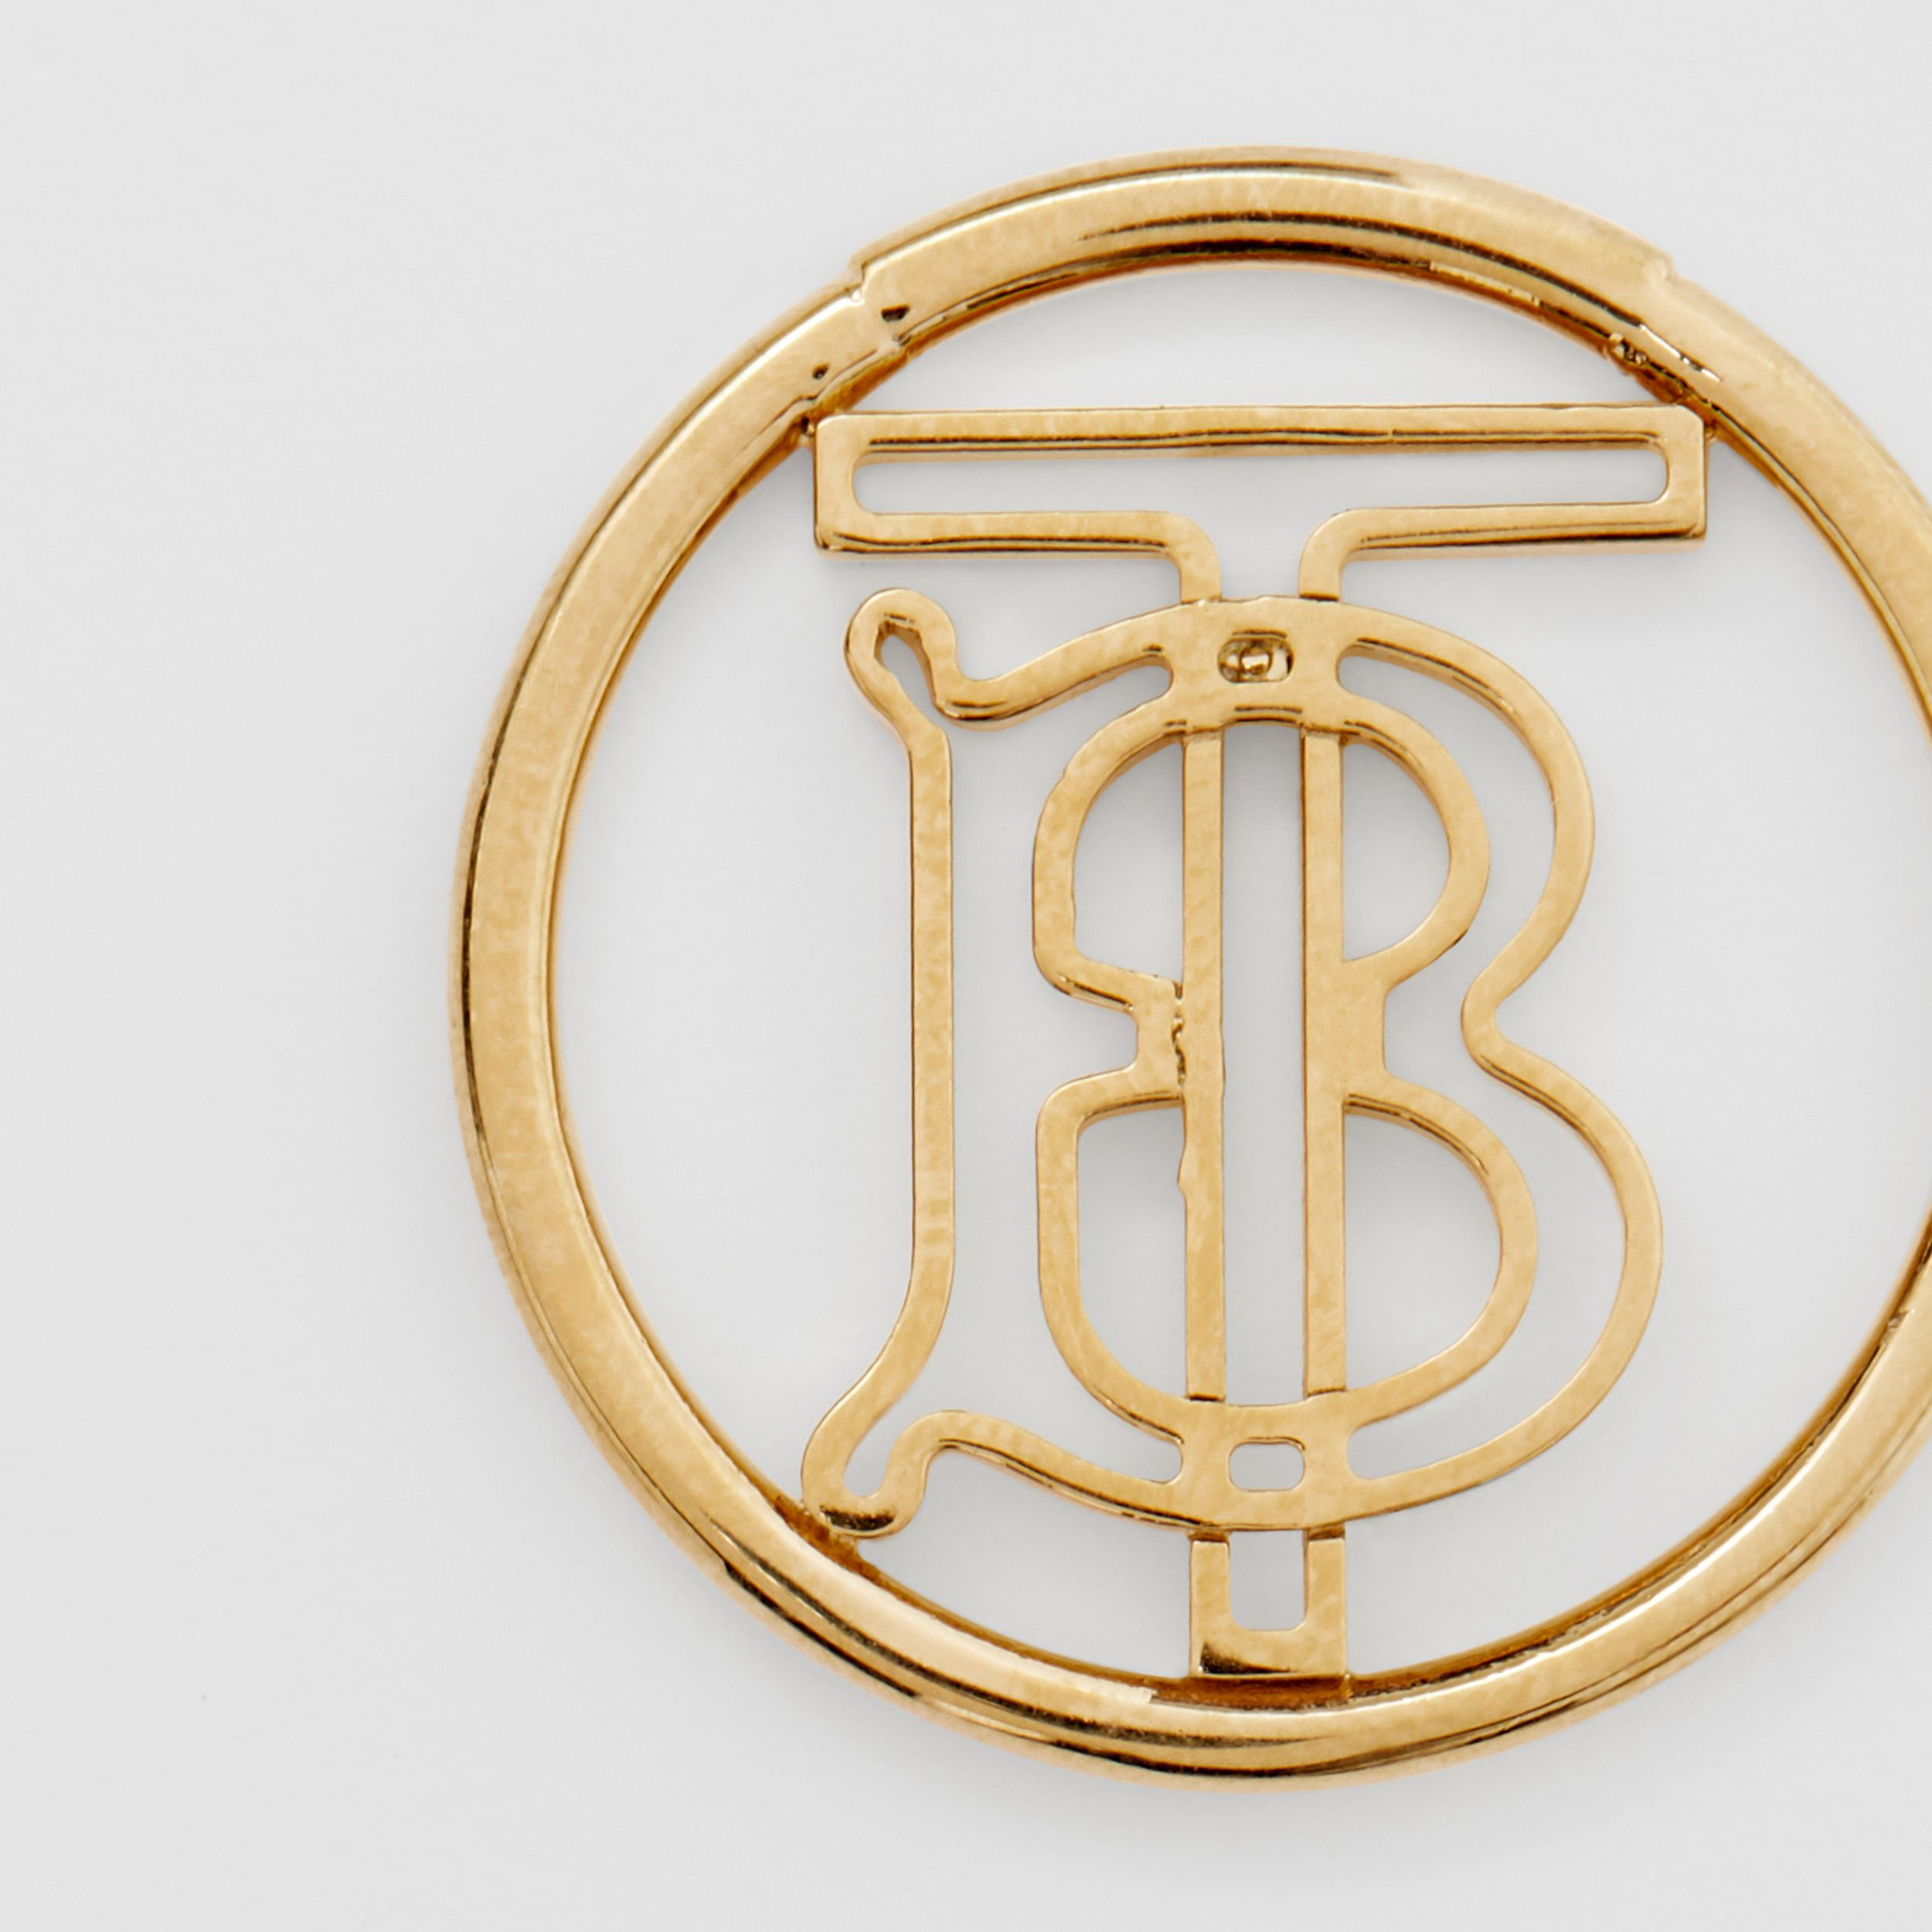 Gold-plated Monogram Motif Earrings in Light - Women | Burberry Australia - 2